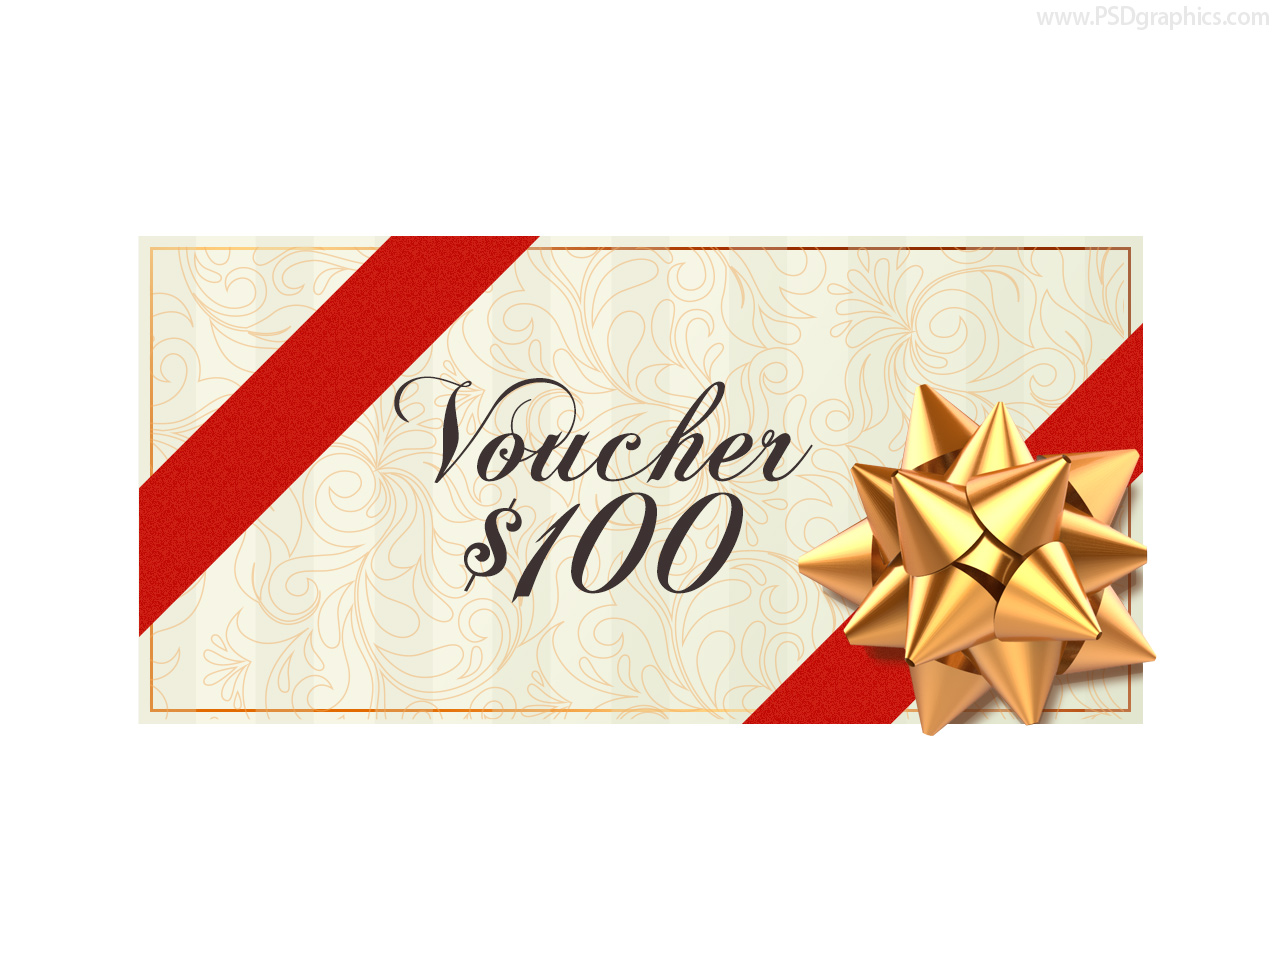 Christmas Voucher Template christmas voucher templates voucher – Free Christmas Voucher Template